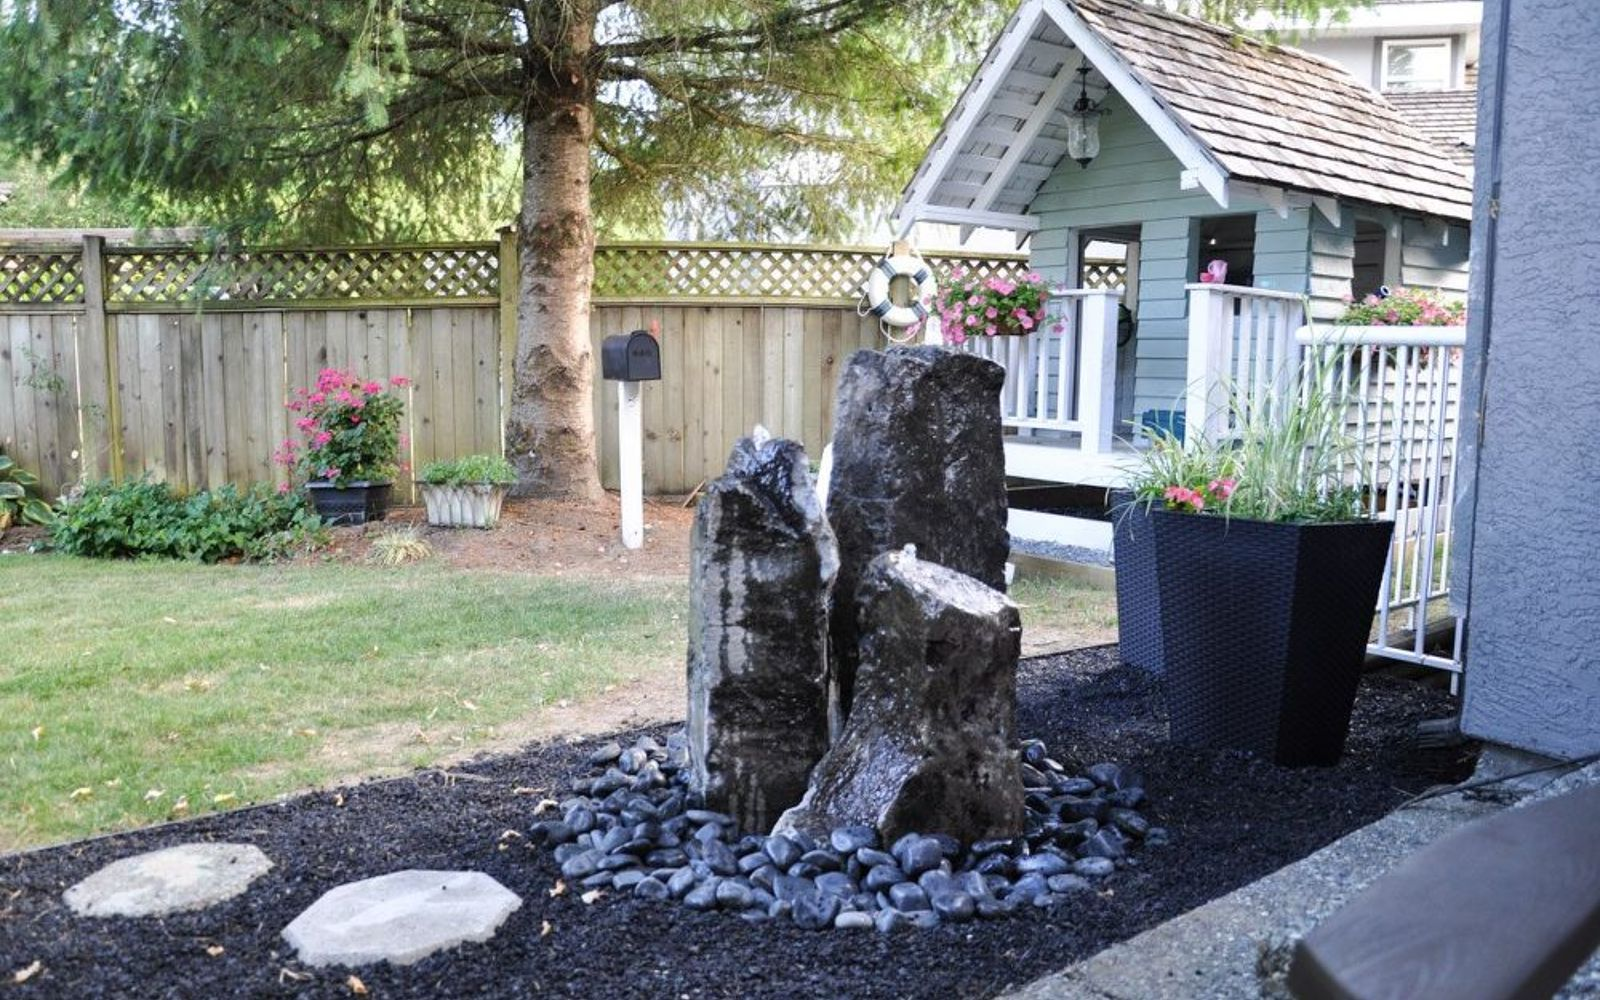 s 10 mini water features to add zen to your garden, outdoor living, ponds water features, Run a fountain through tall standing stones